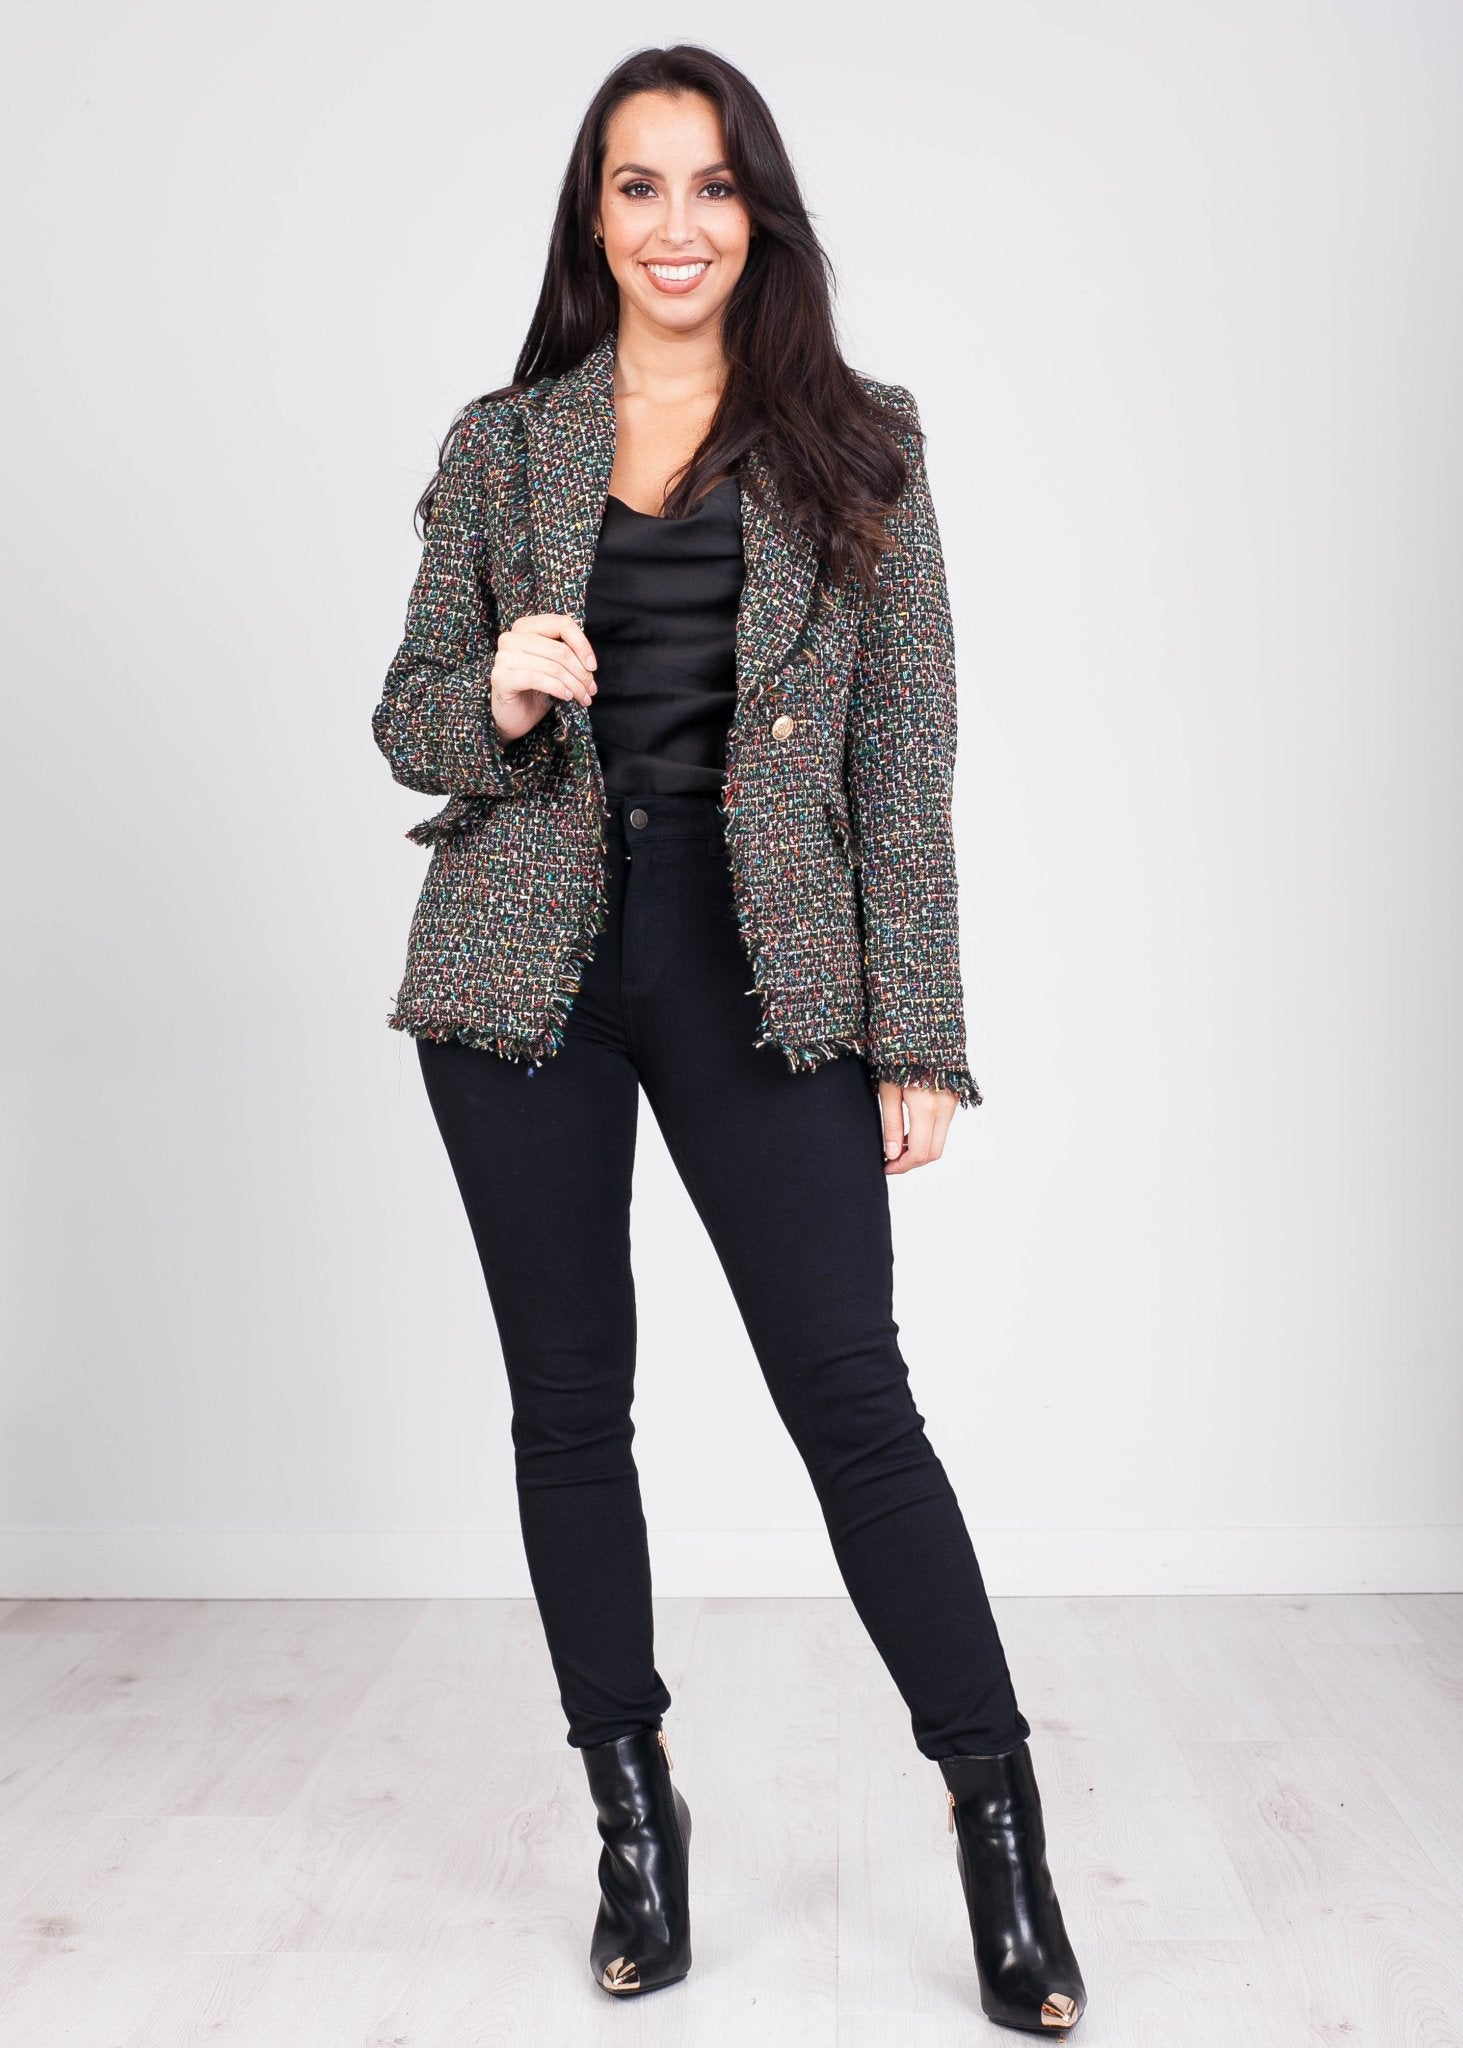 Arabella Black Frayed Edge Multi Tweed Blazer - The Walk in Wardrobe